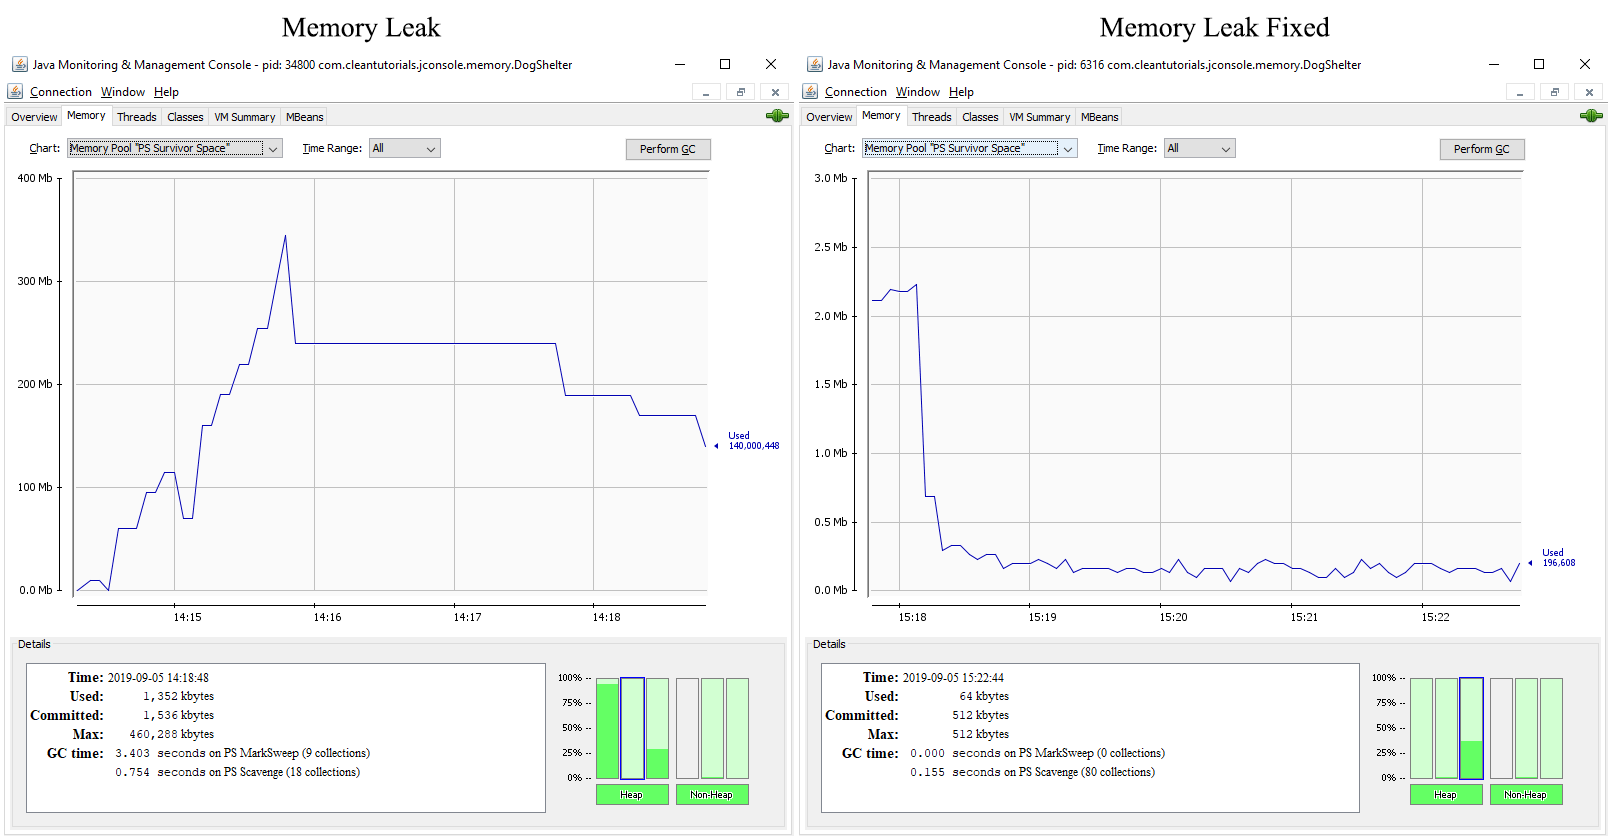 Survivor space memory chart comparison for a Java application having a memory leak and without memory leak using JConsole